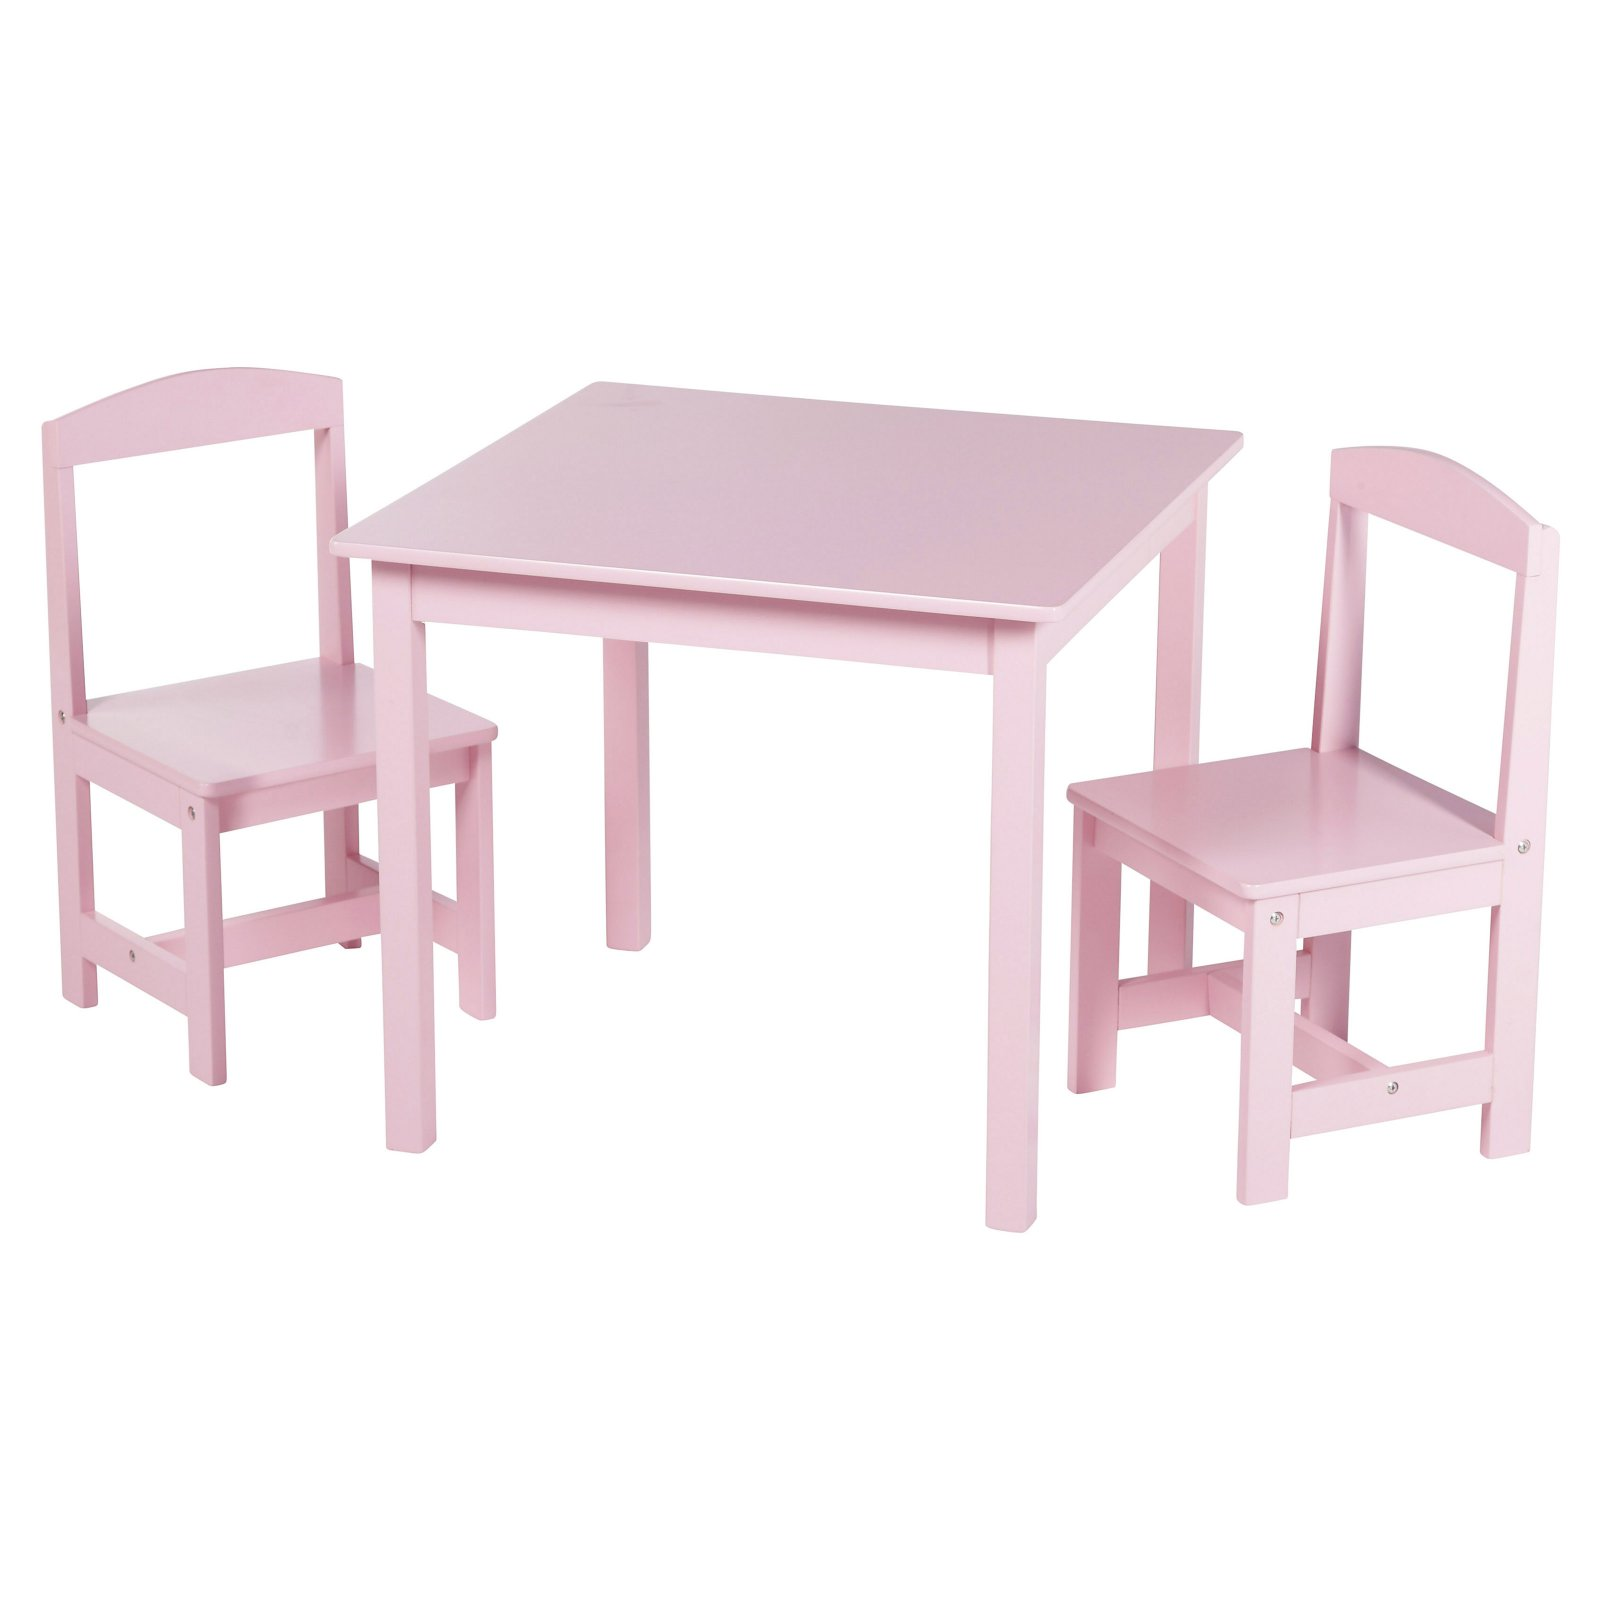 3 piece table and chair set heavy duty computer tms hayden kids multiple colors walmart com